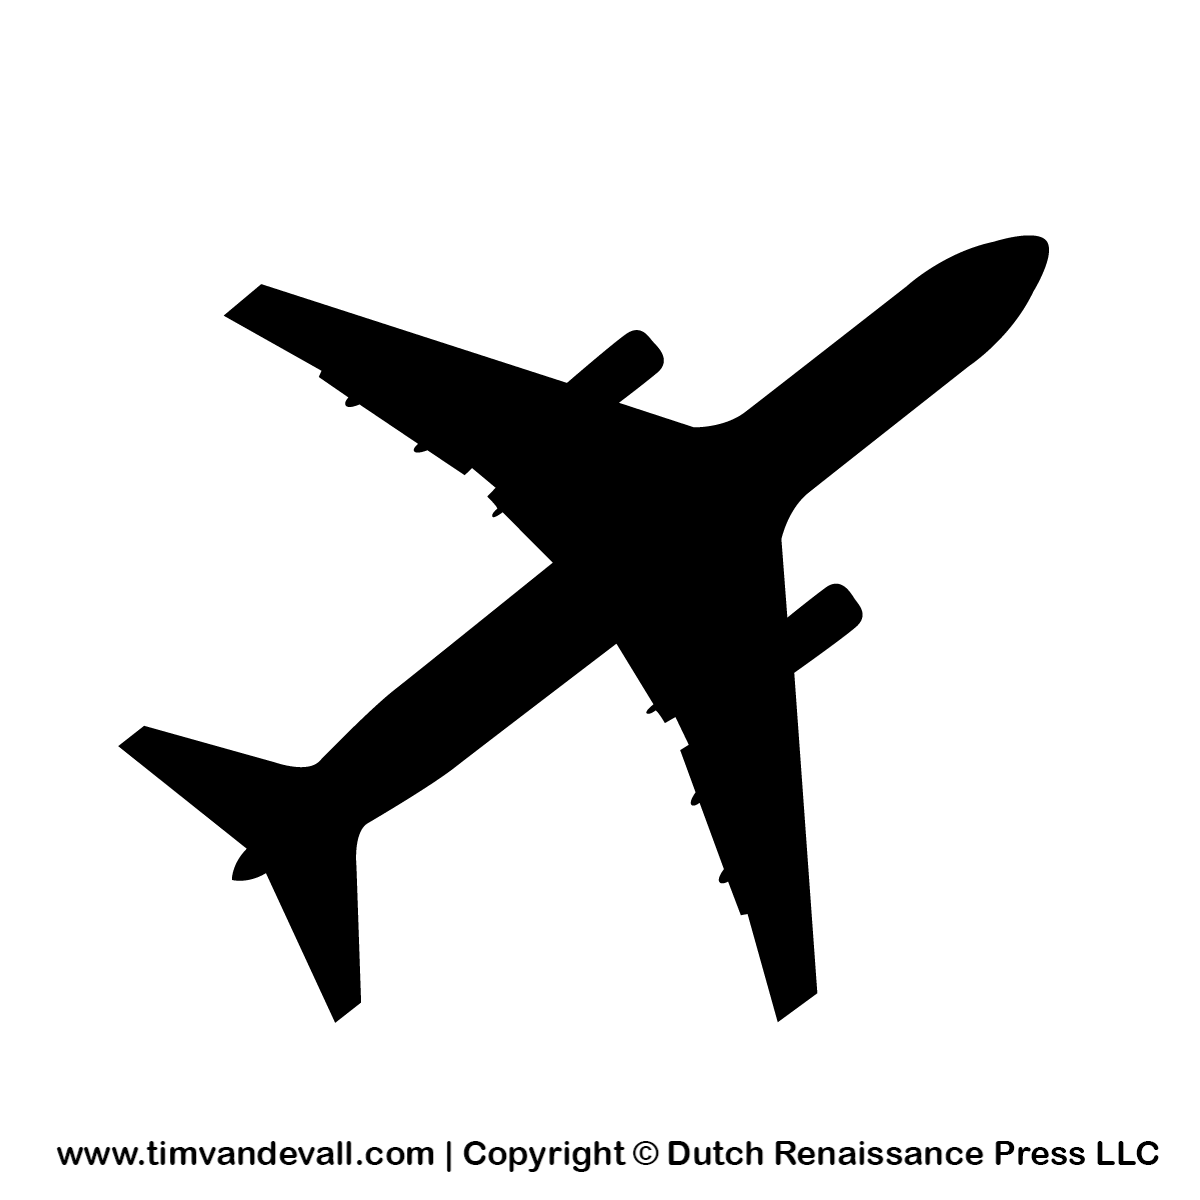 Free Airplane Silhouette Stencil And Out-Free Airplane Silhouette Stencil And Outline Clipart For Artists-11